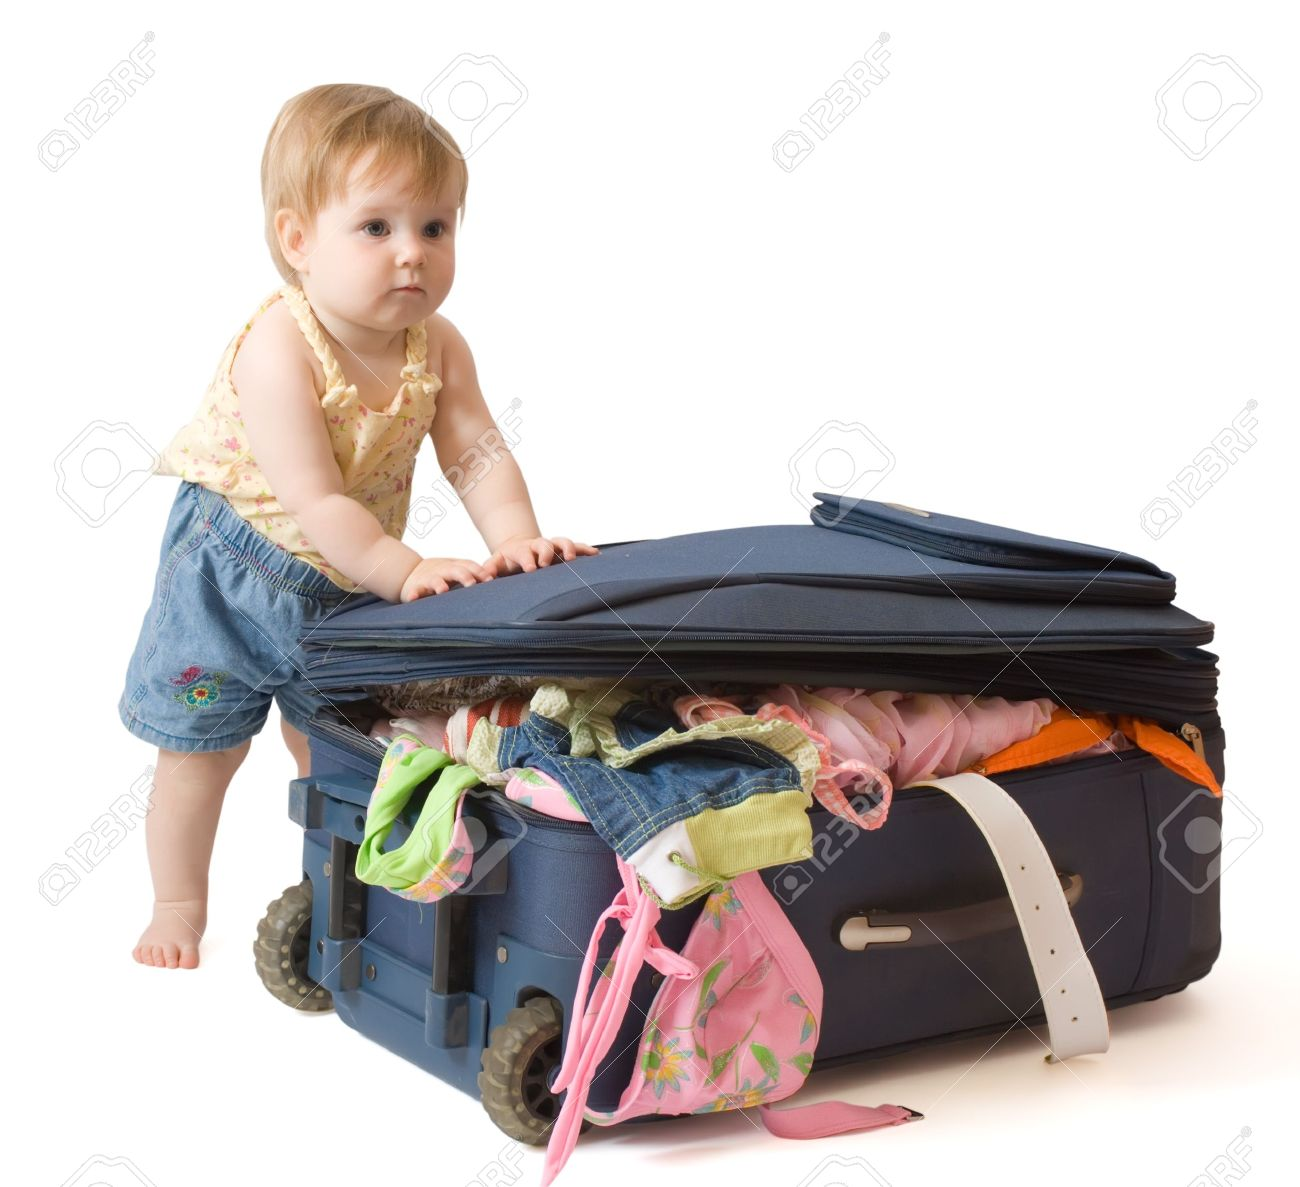 girl standing near the suitcase, trying to pack it, isolated, with clipping path Stock Photo - 3254405